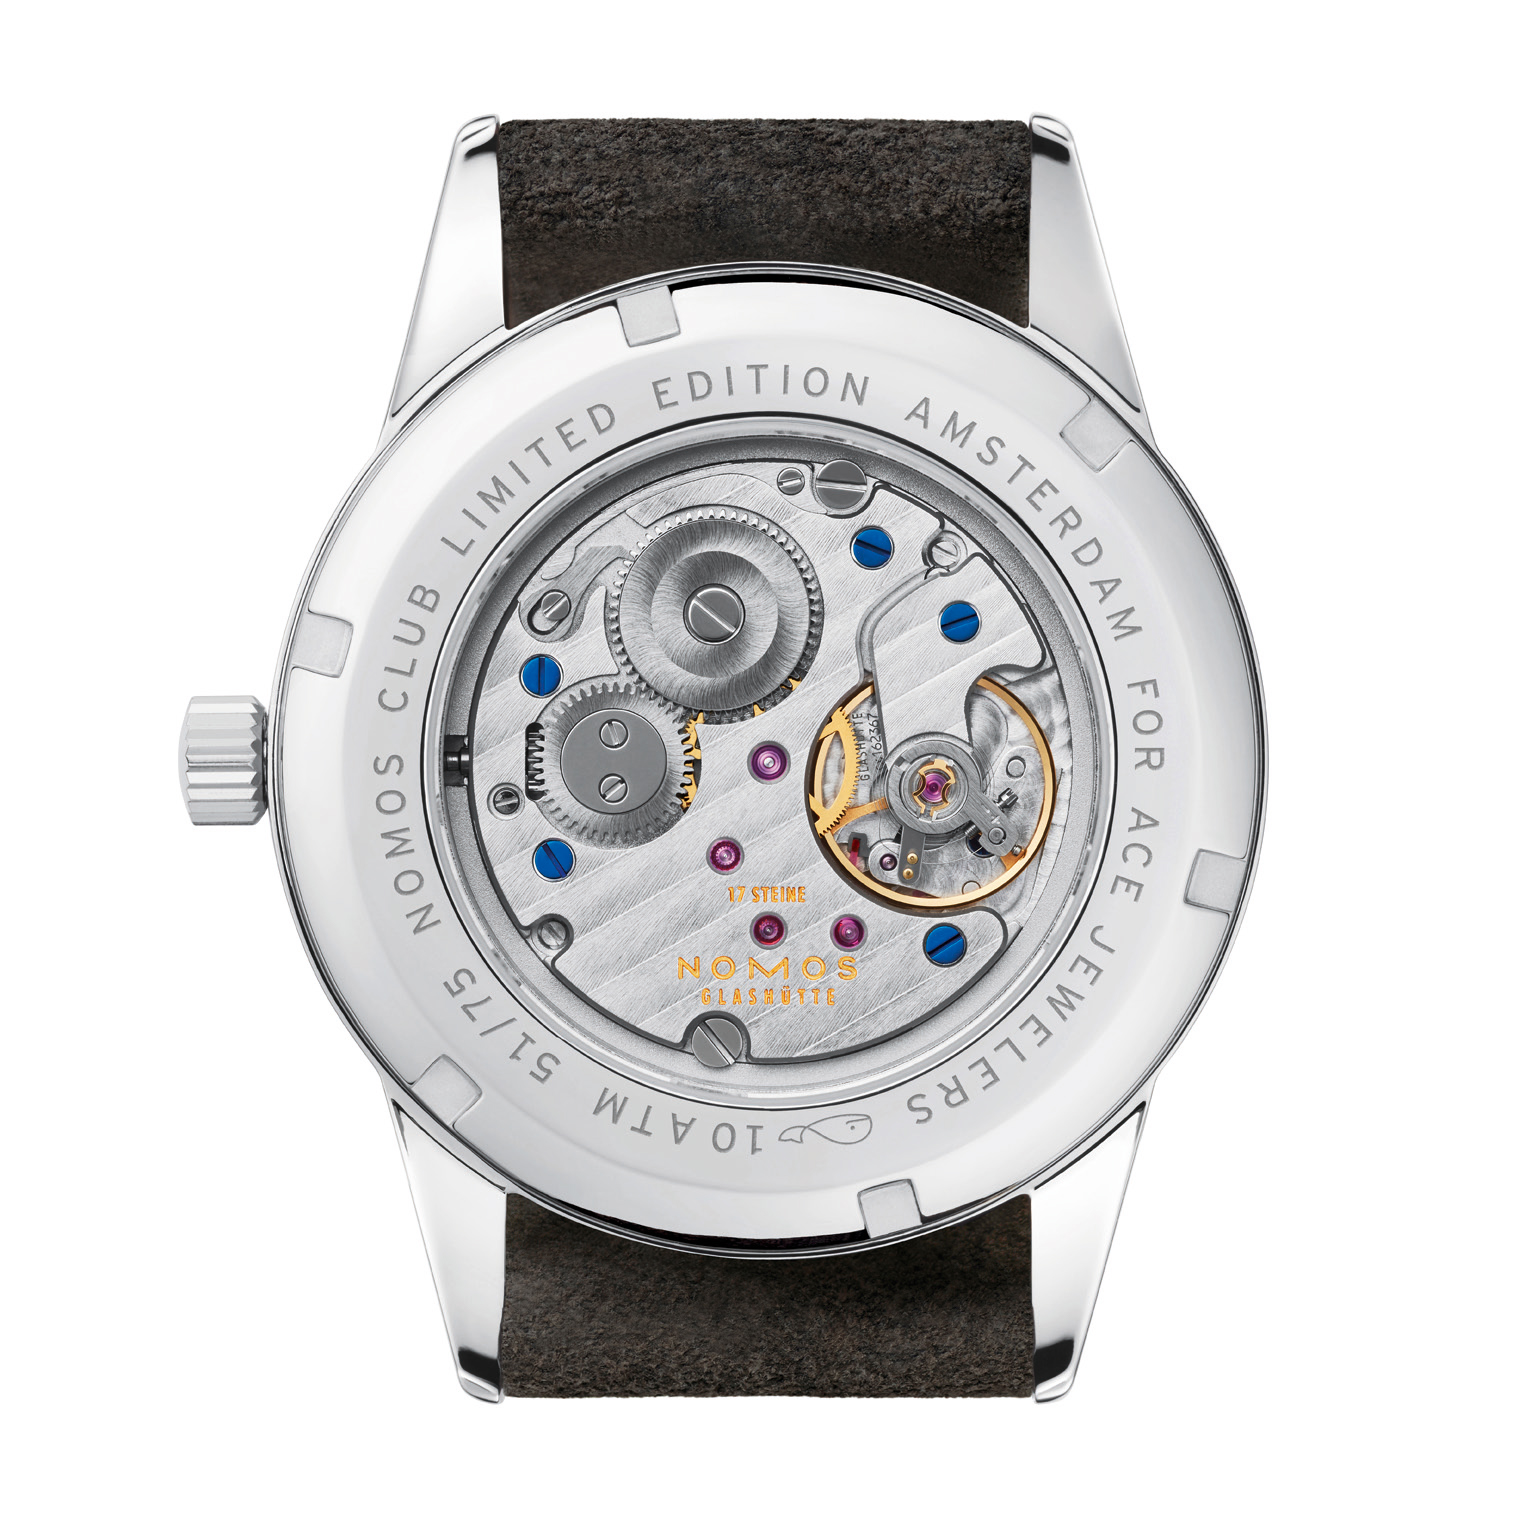 Nomos Club Campus Amsterdam Limited Edition by Ace Jewelers